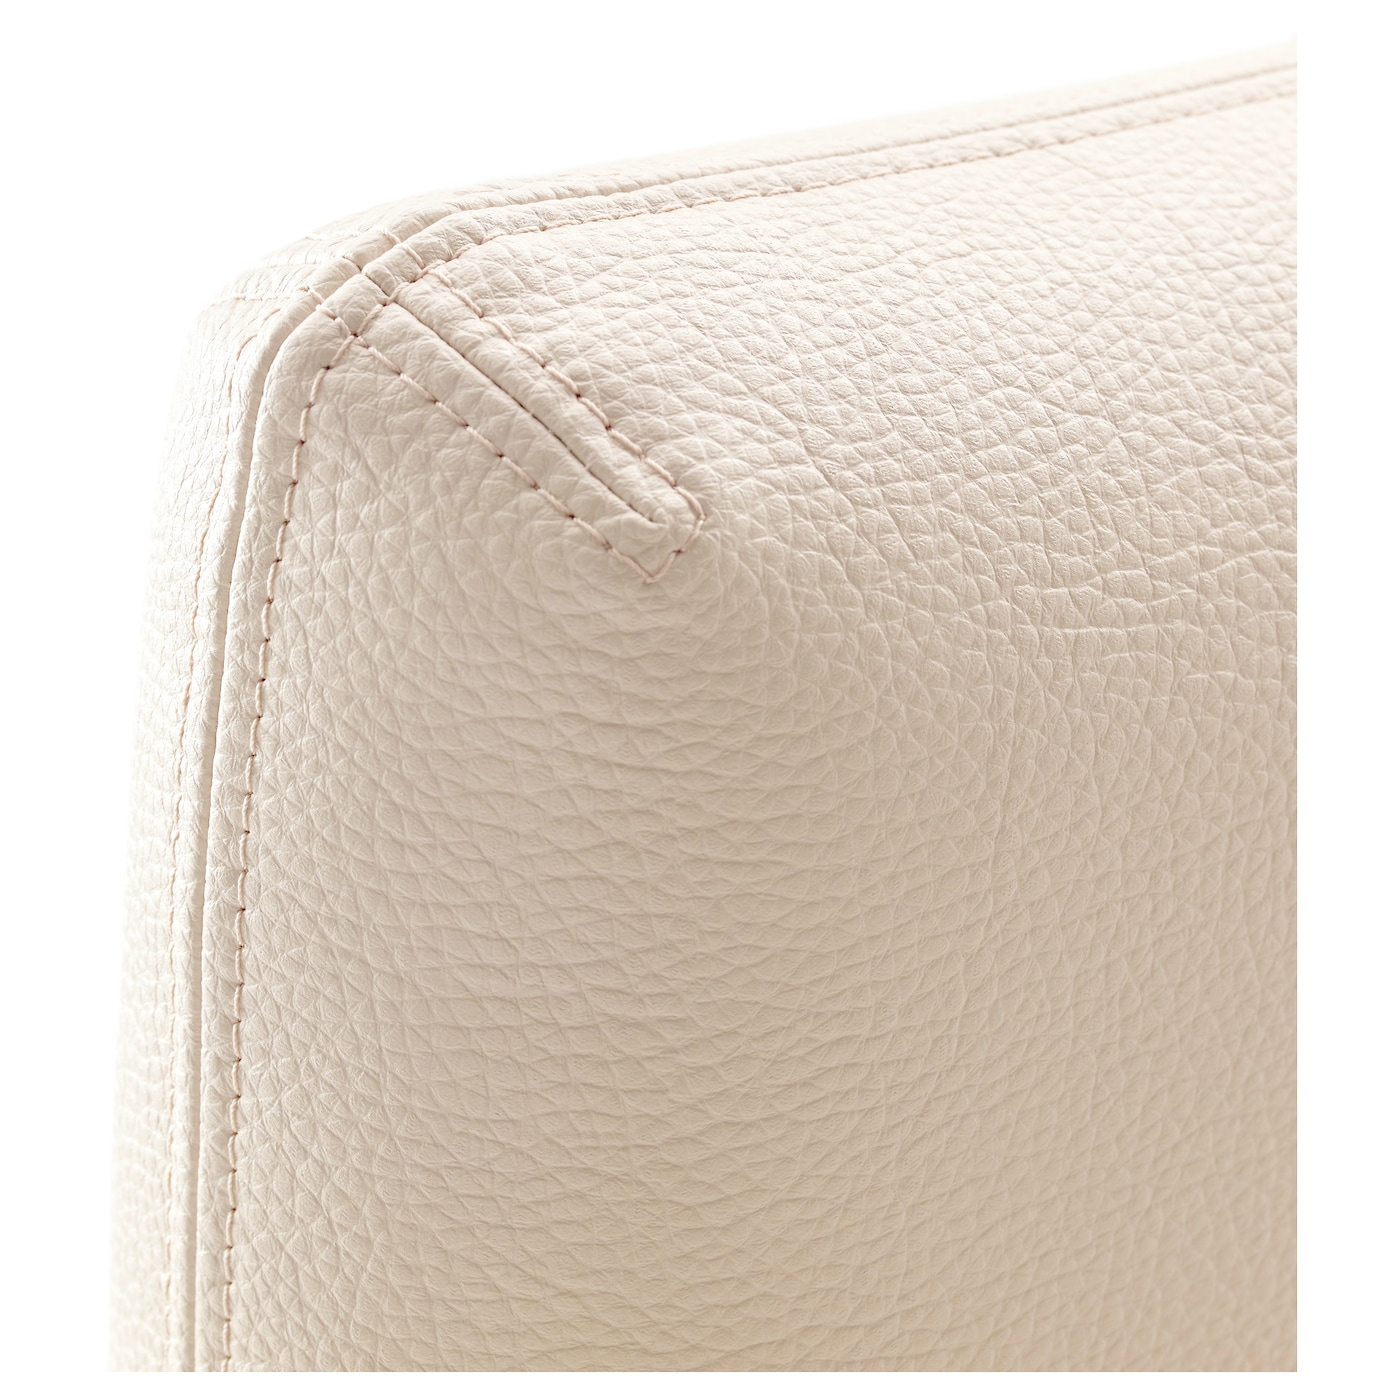 IKEA VALLENTUNA armrest The cover is easy to keep clean as it can be wiped clean with a damp cloth.